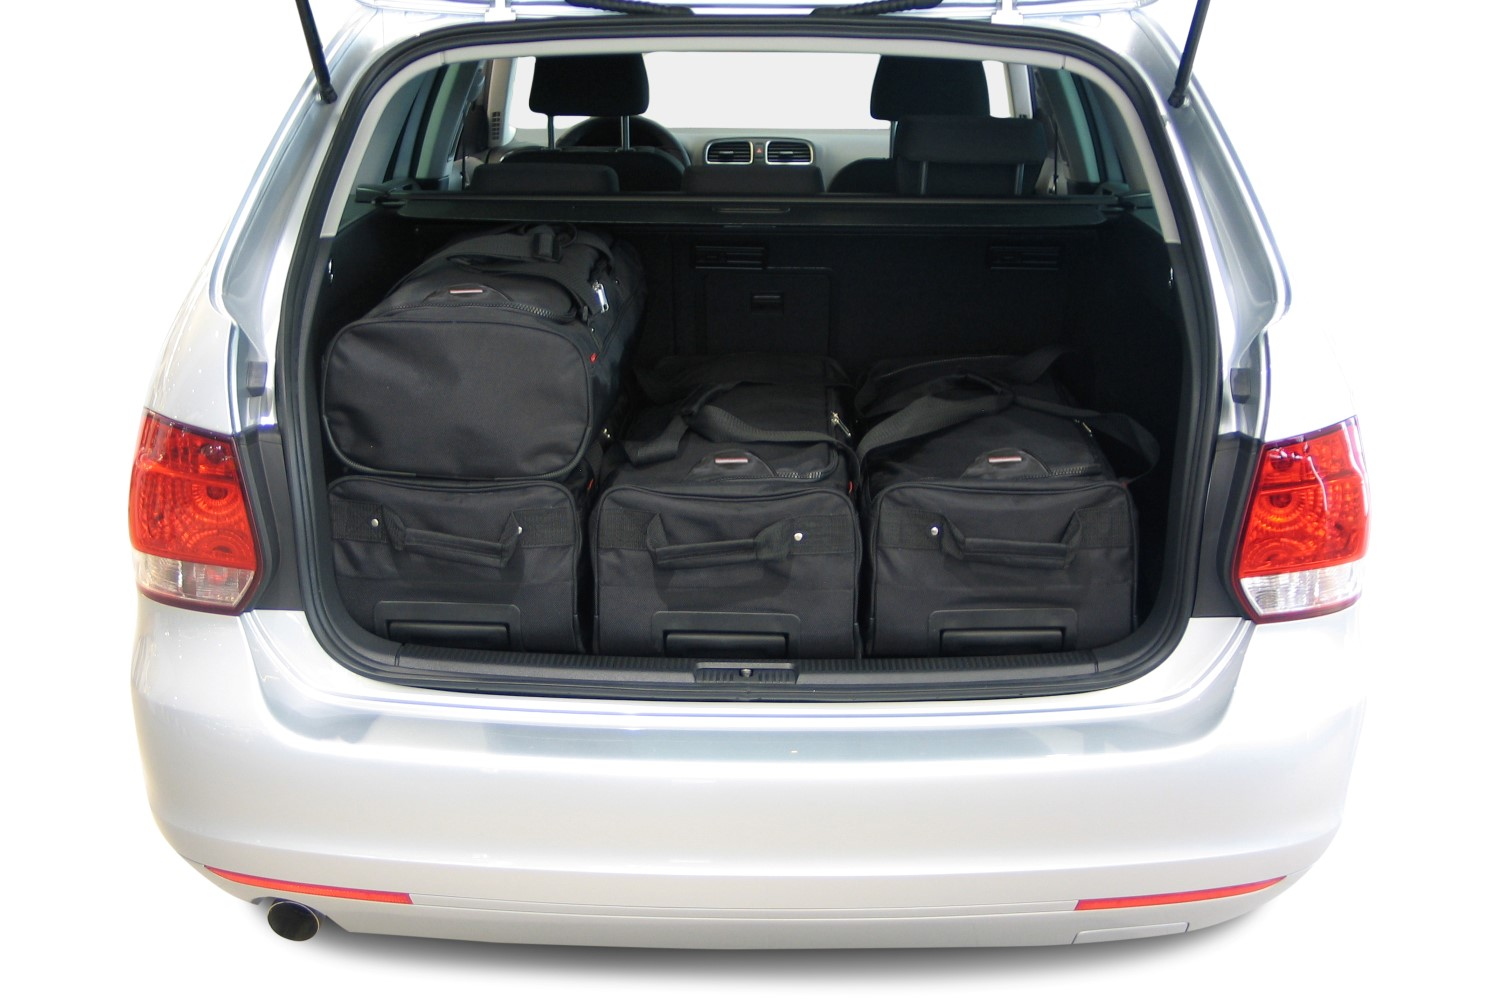 golf v variant 1k 2007 2009 volkswagen golf v 1k vi 5k variant 2007 2013 car bags. Black Bedroom Furniture Sets. Home Design Ideas